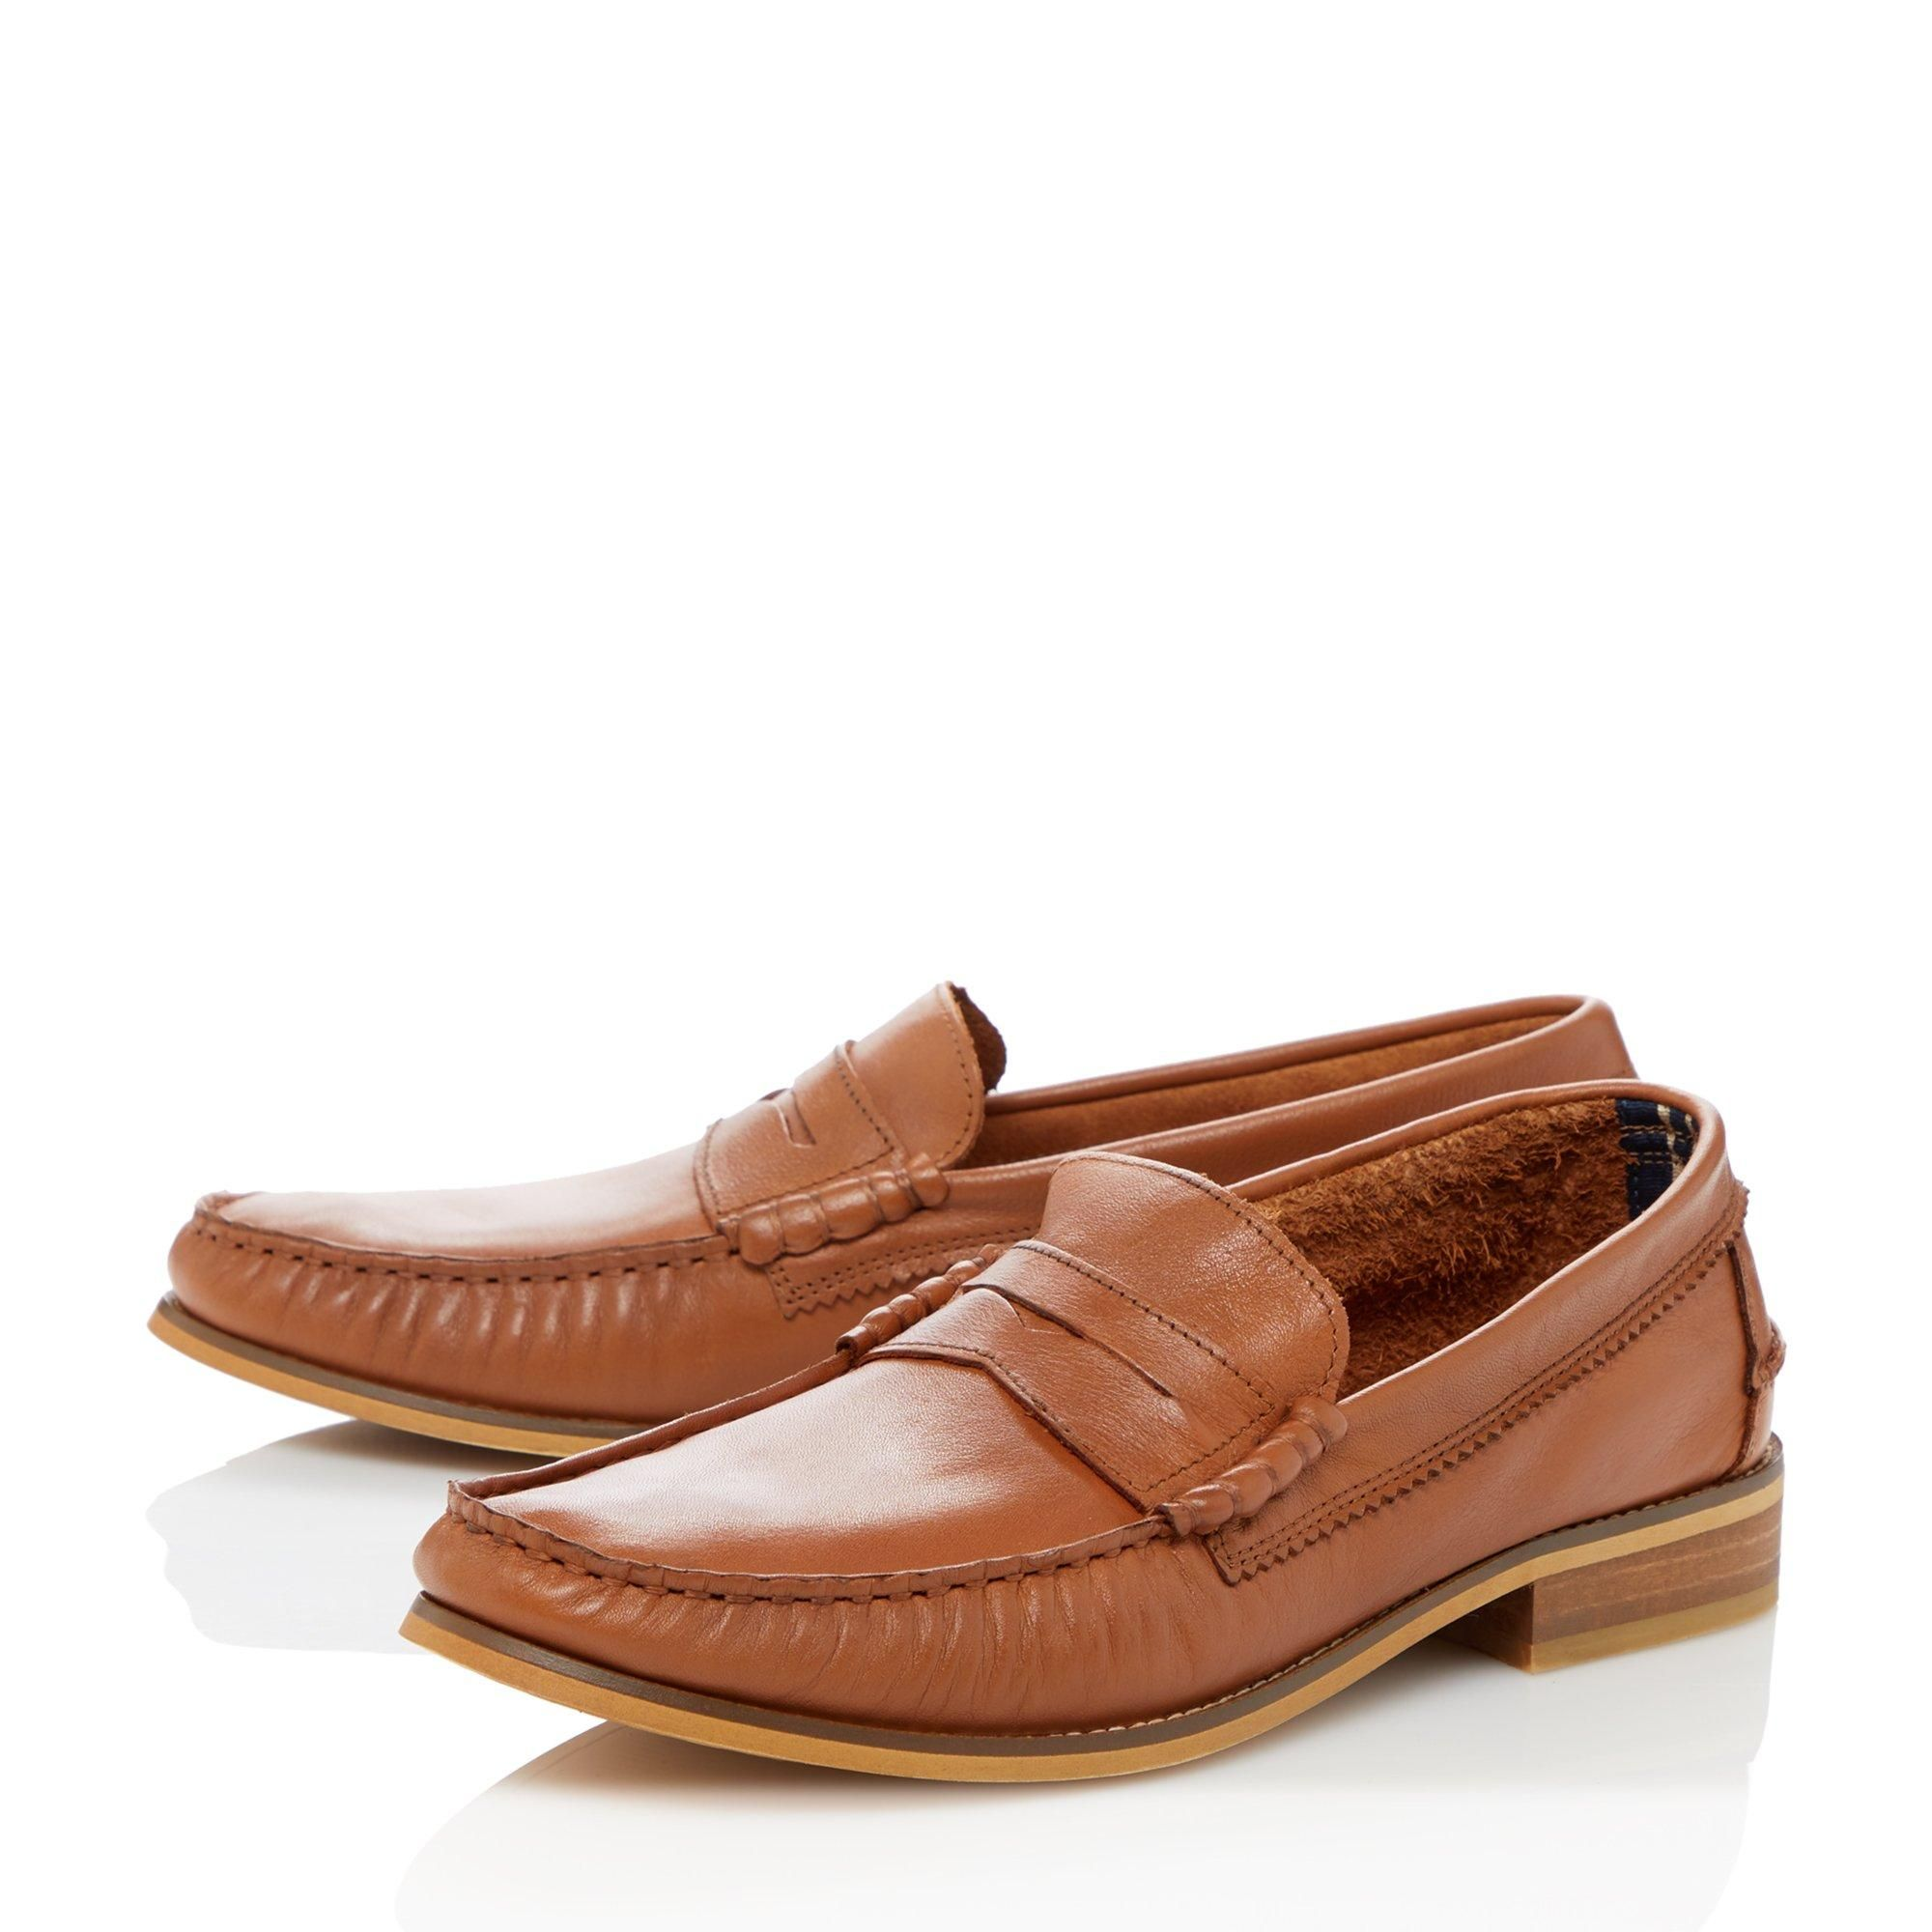 Dune Mens BOURNE DI Penny Loafers